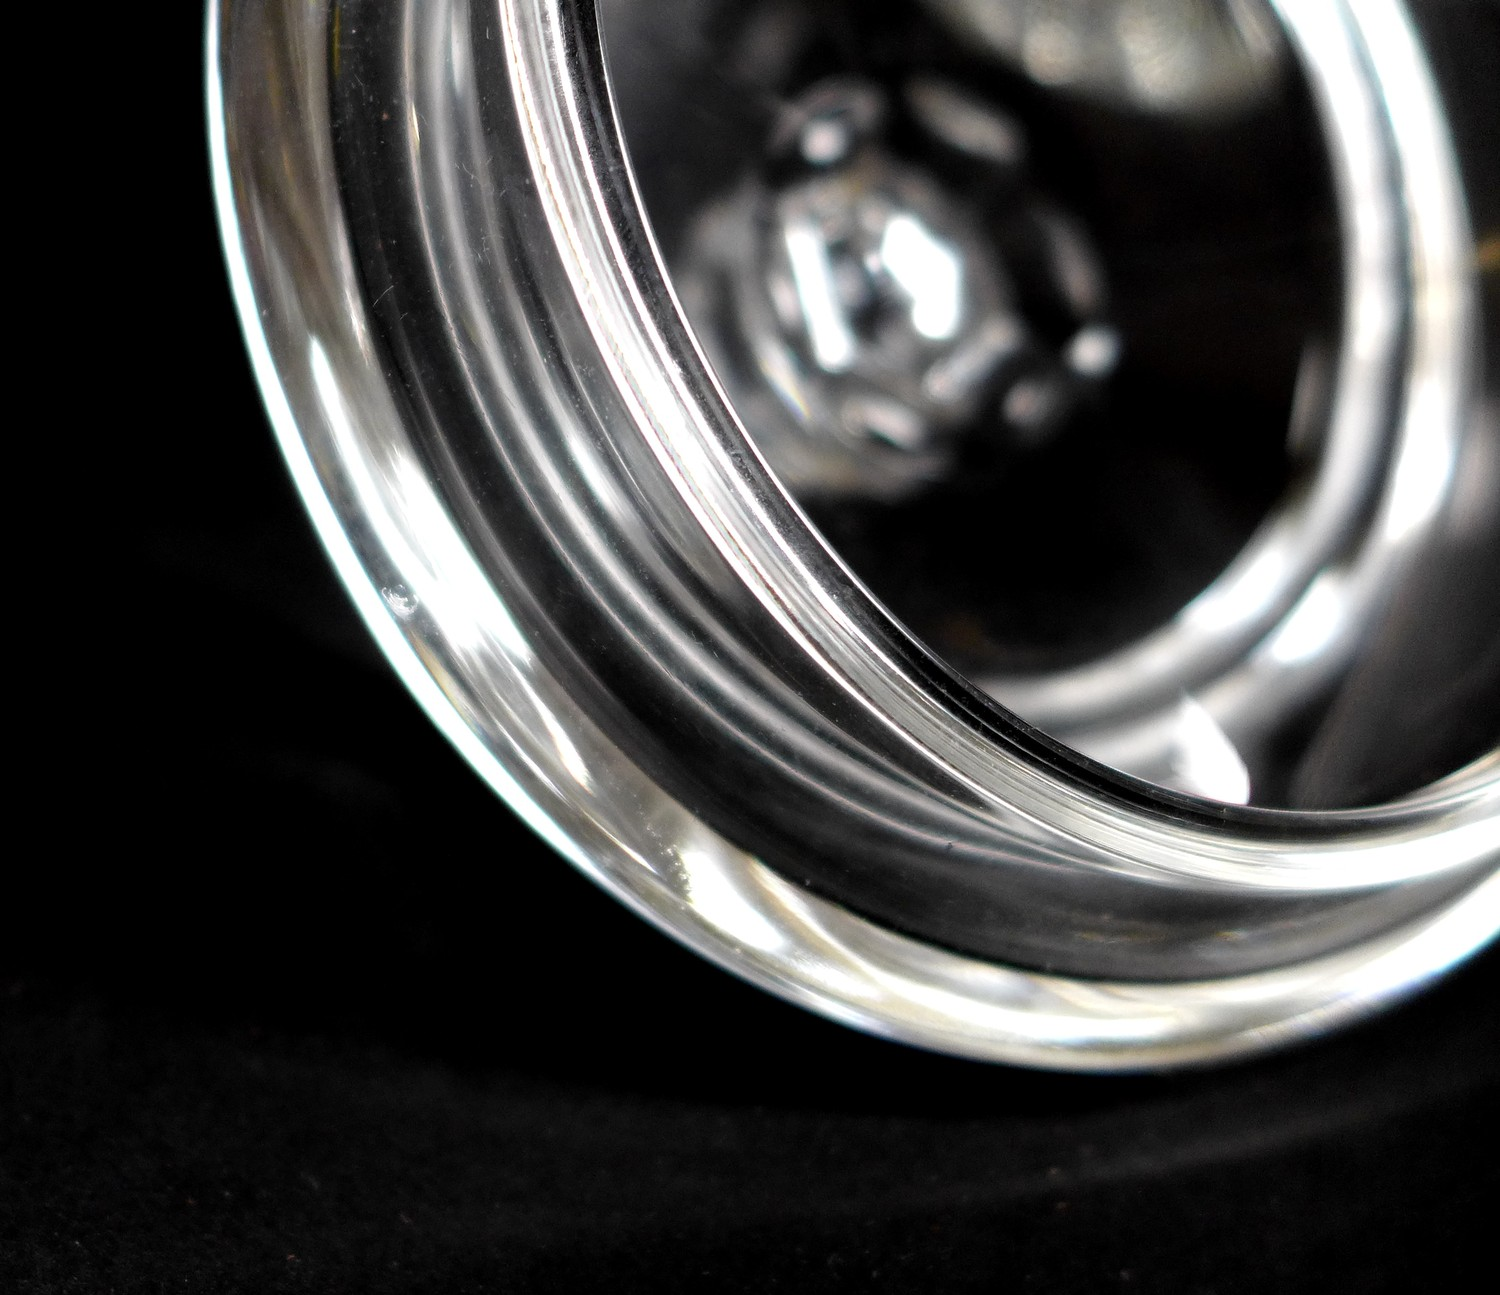 A collection of Waterford Crystal glass wares, including a shallow bowl, 26.5 by 7cm, pedestal bowl, - Image 3 of 12